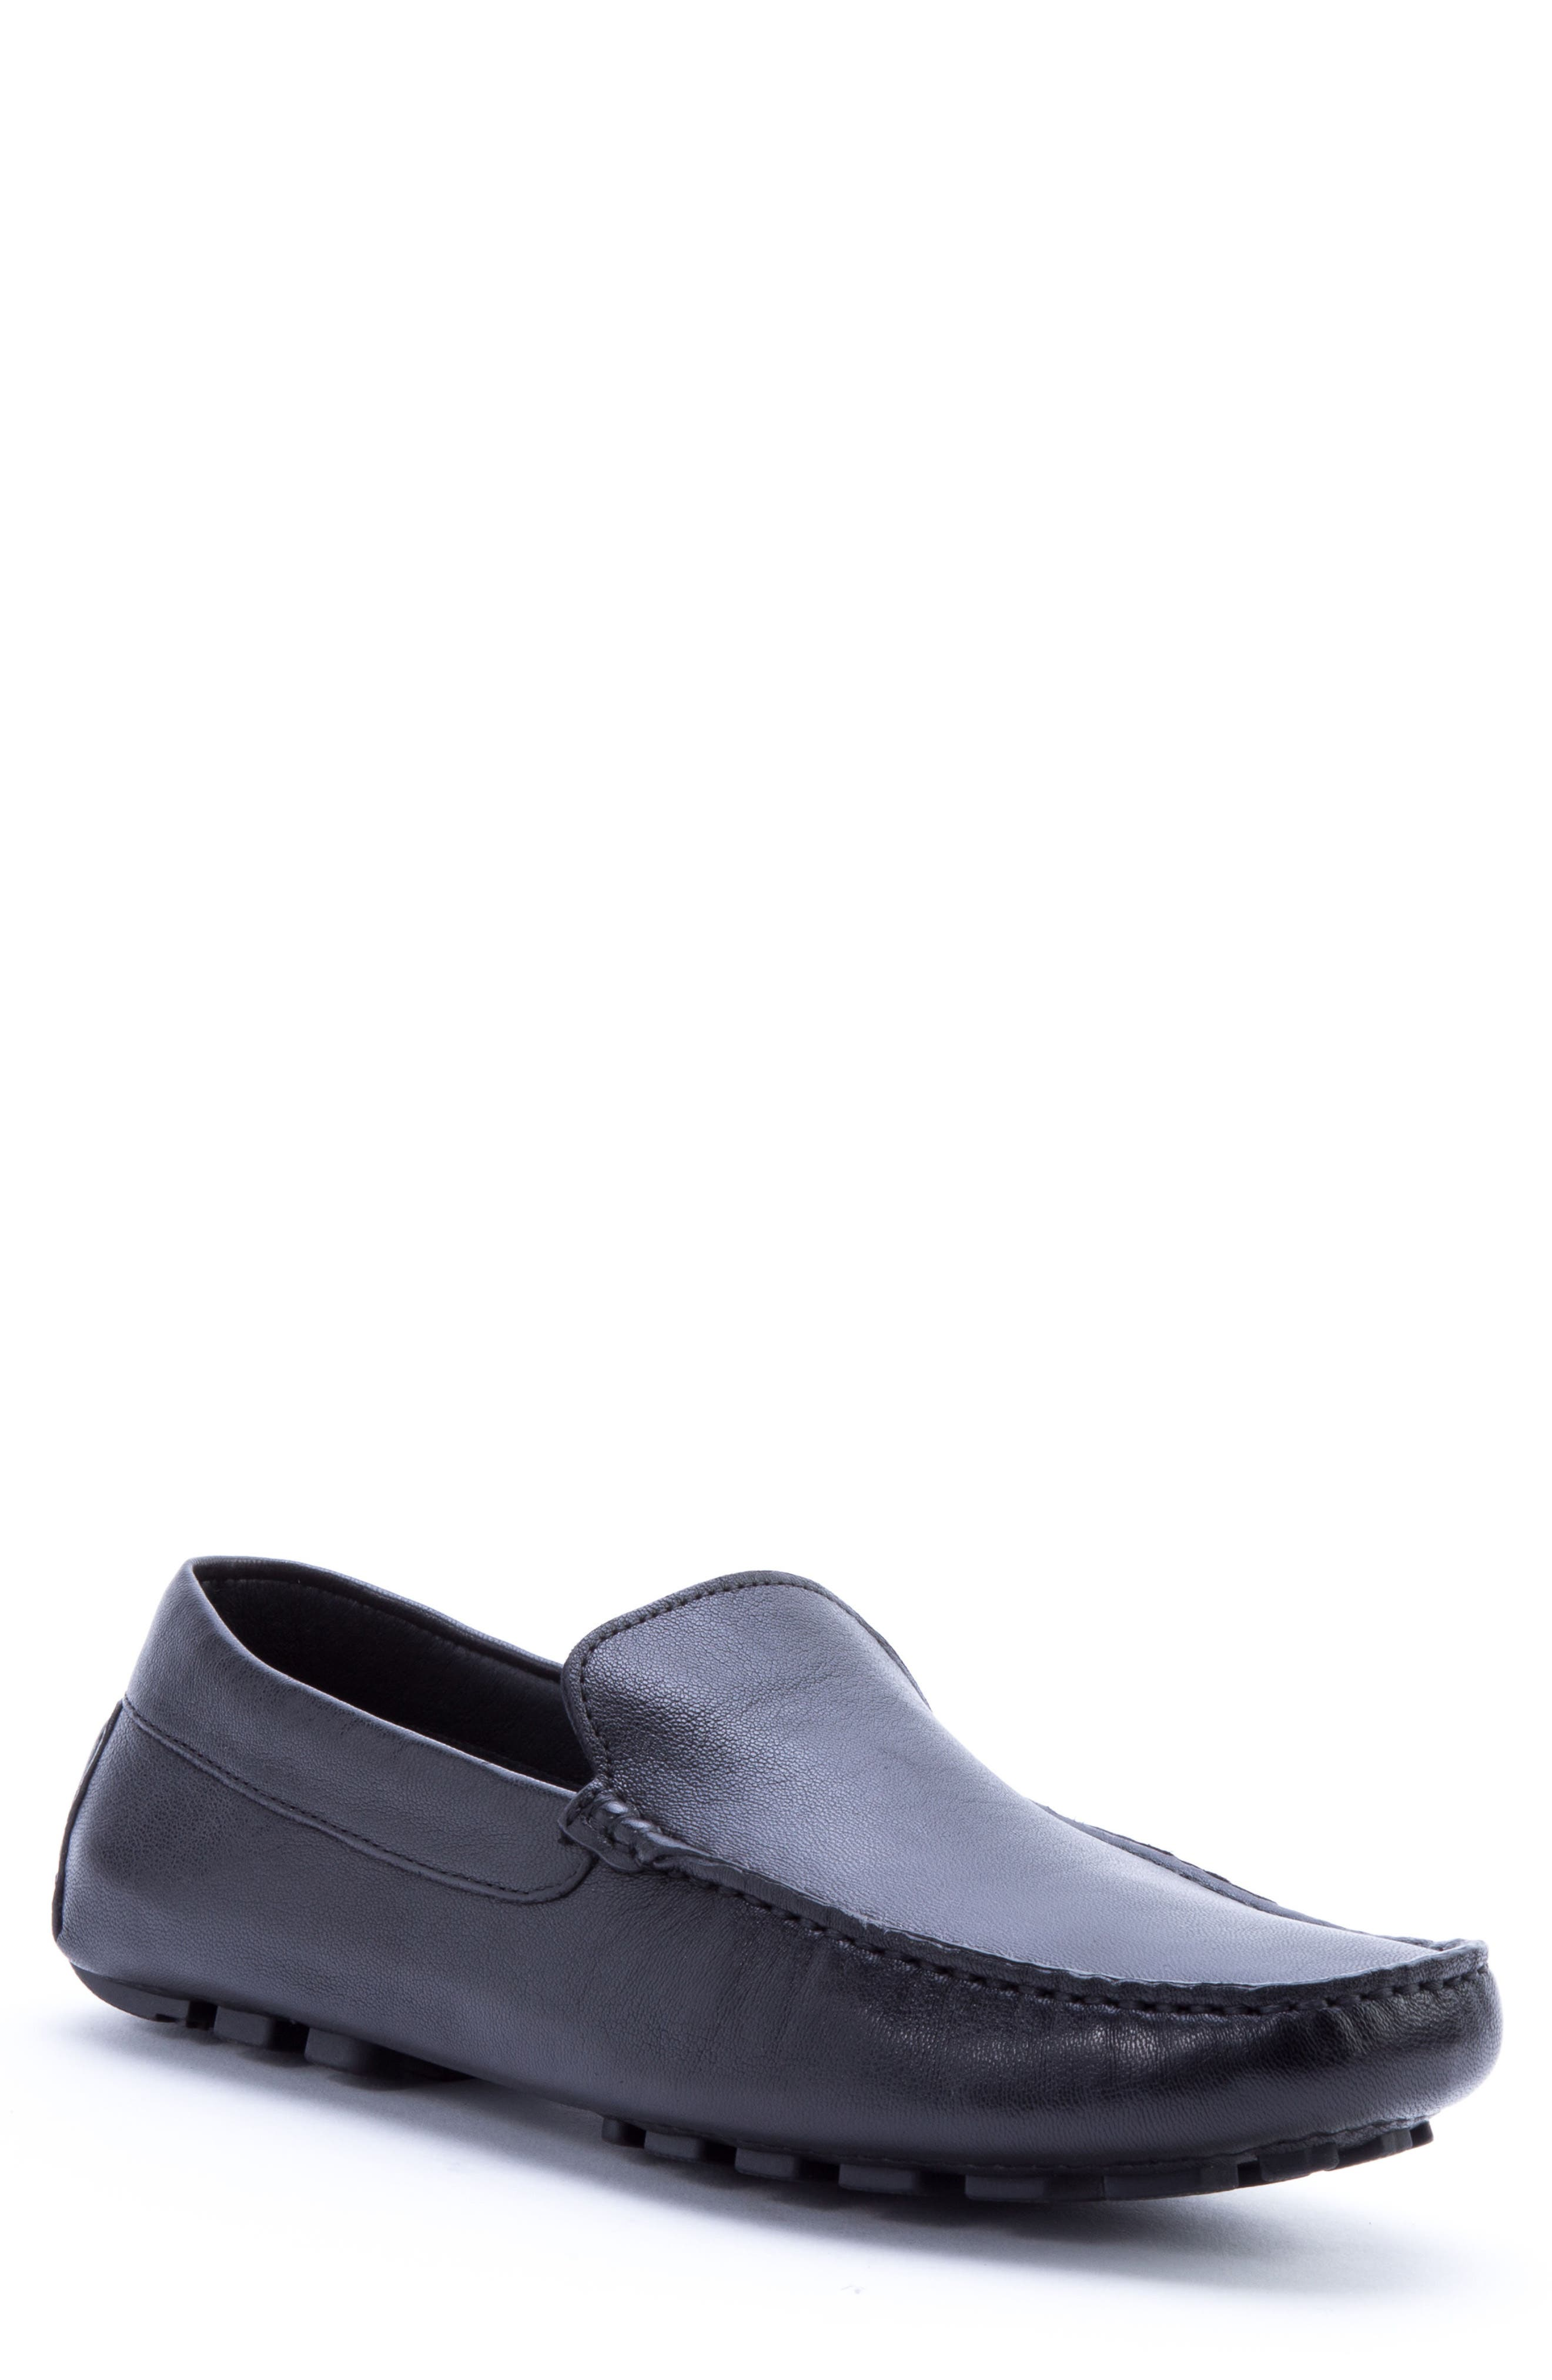 Zanzara Picasso 3 Moc Toe Driving Loafer